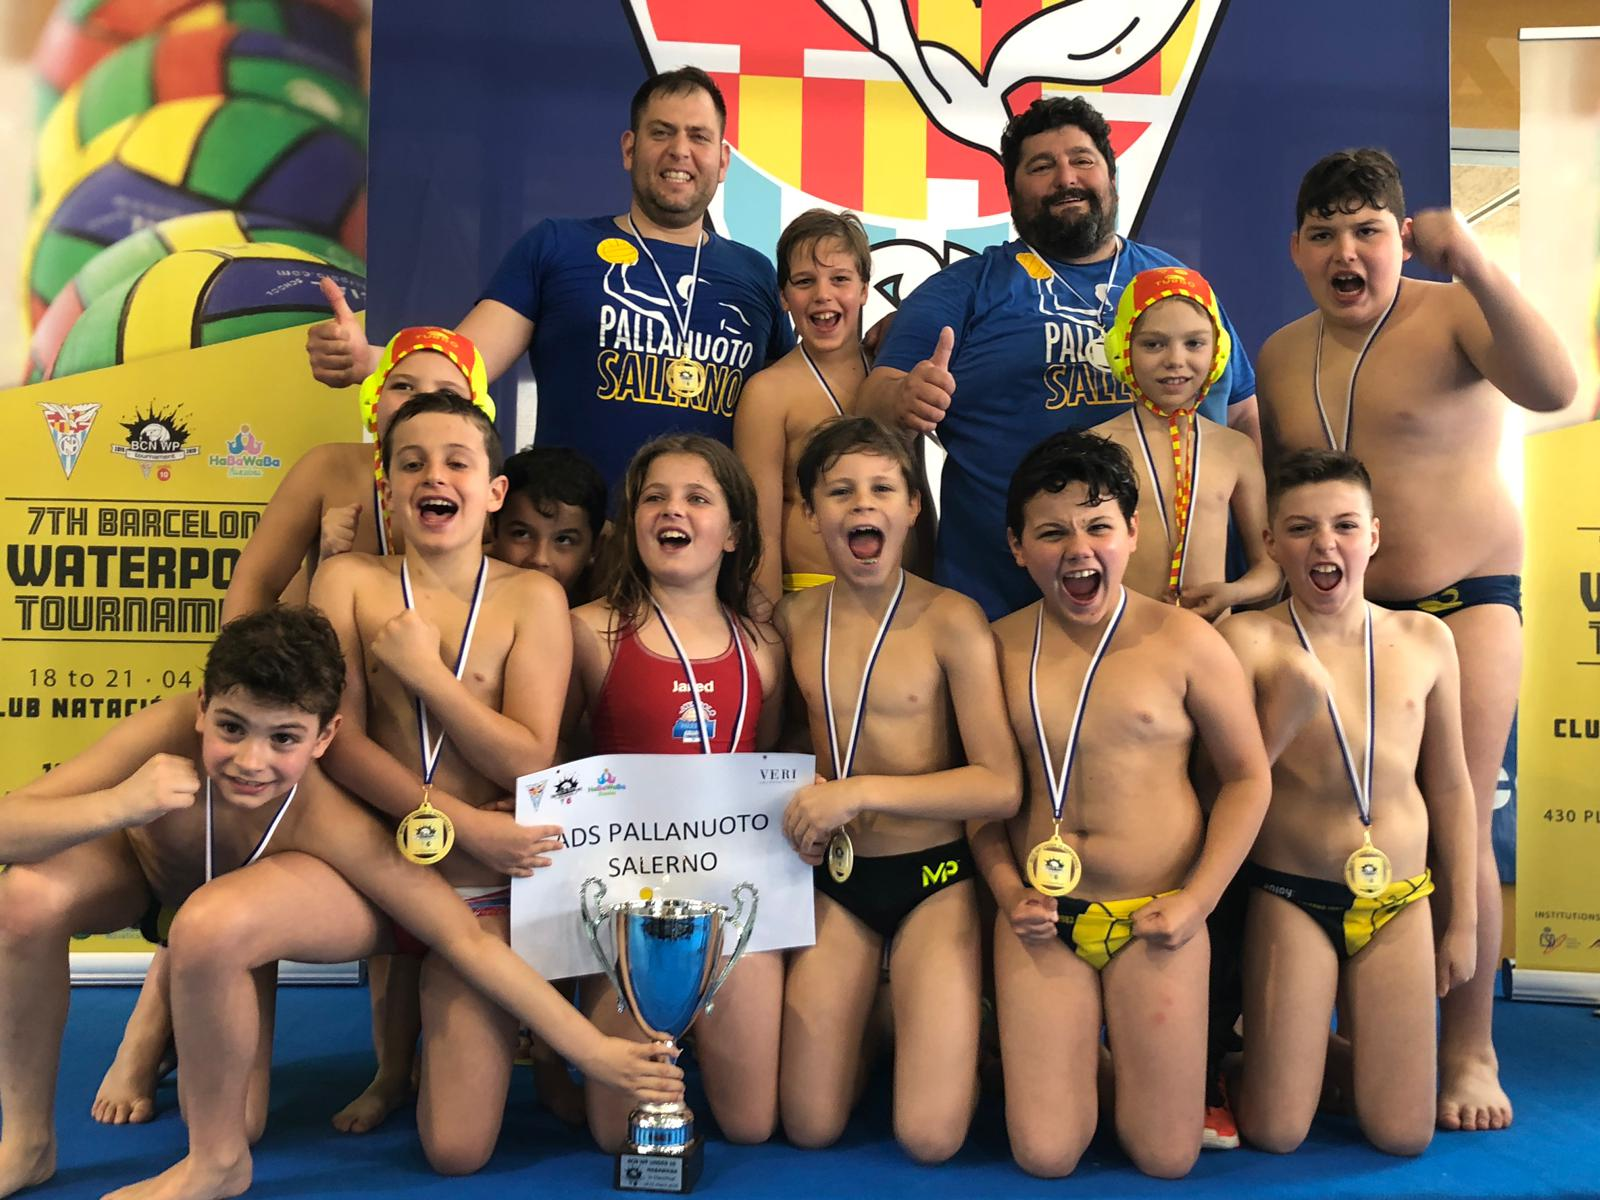 habawaba-barcellona-BCNWP-tournament-under-10-pallanuoto-salerno-2019 (1)